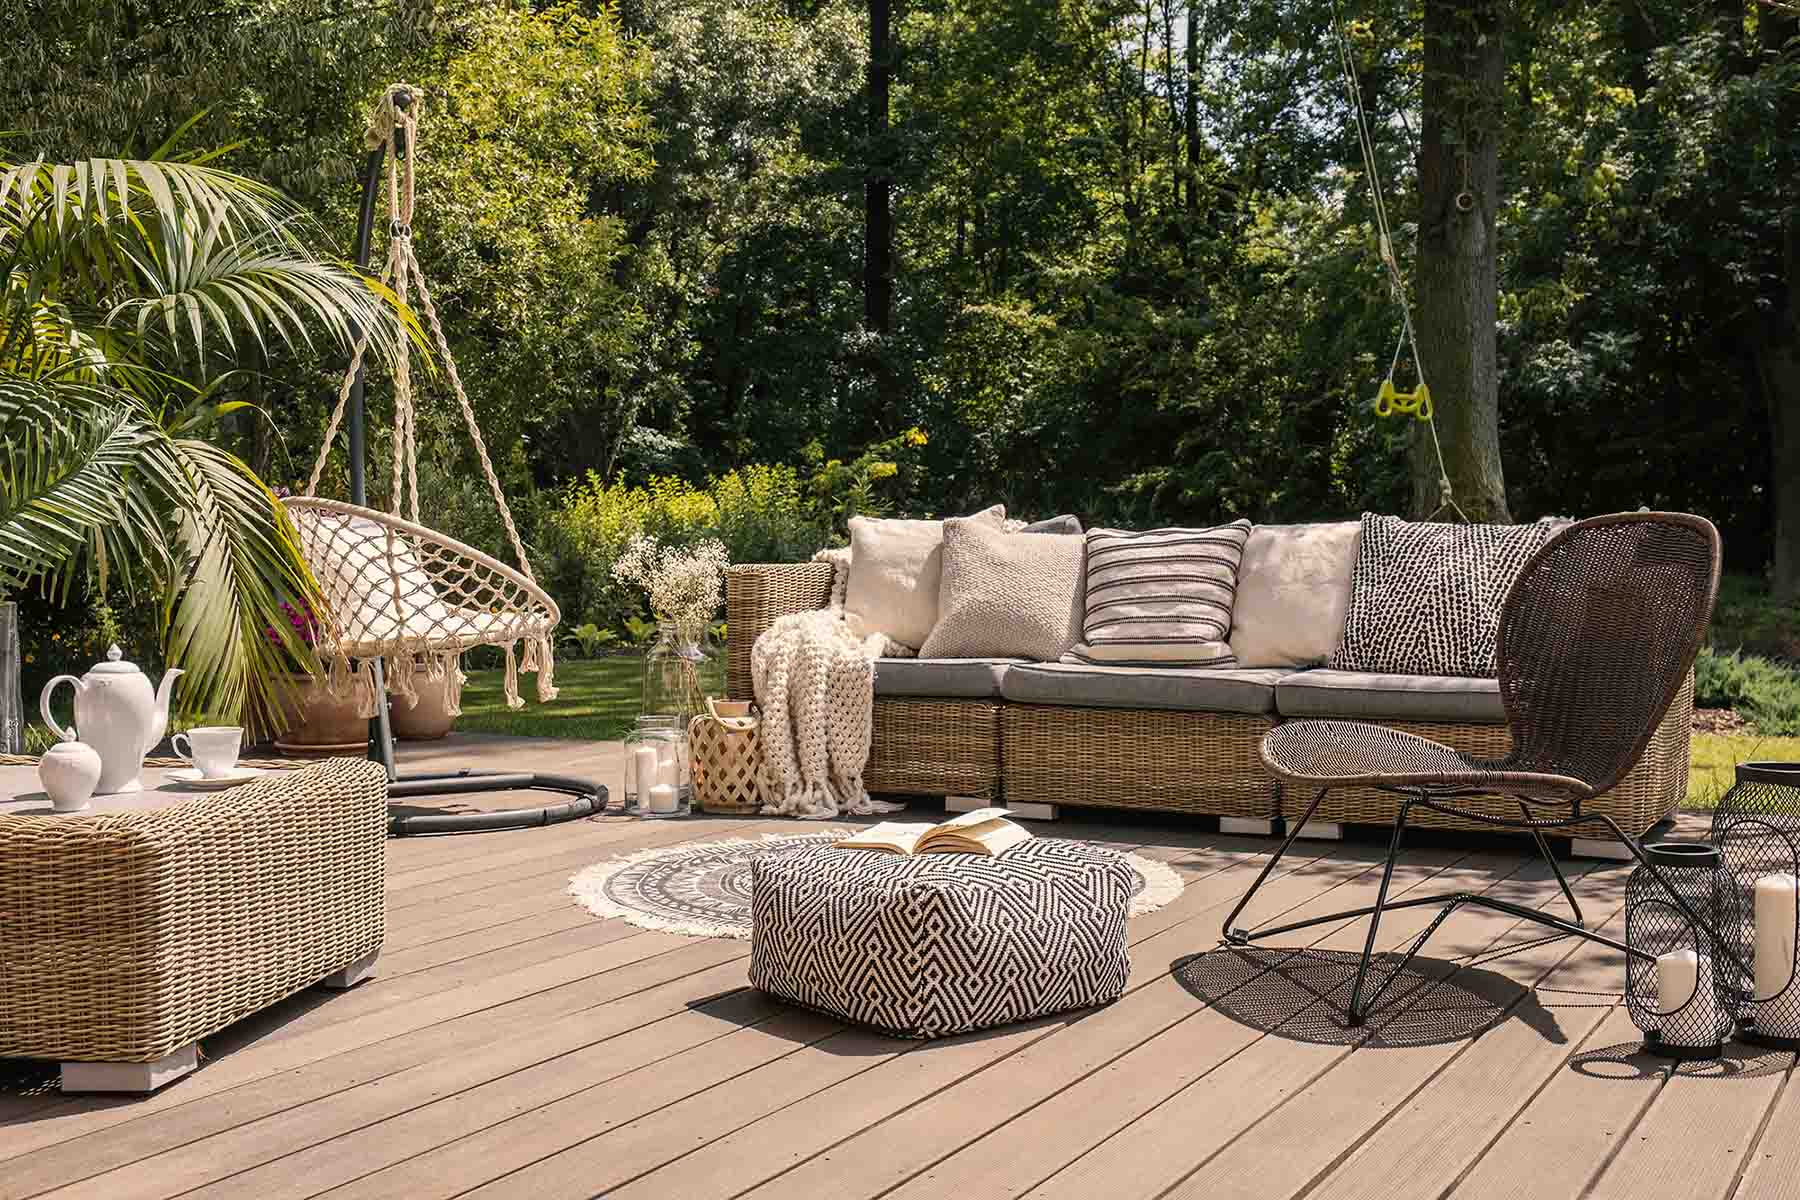 When you are investing in something new there are always questions that will arise, and it's no different when it comes to composite decking... that's where we come in!